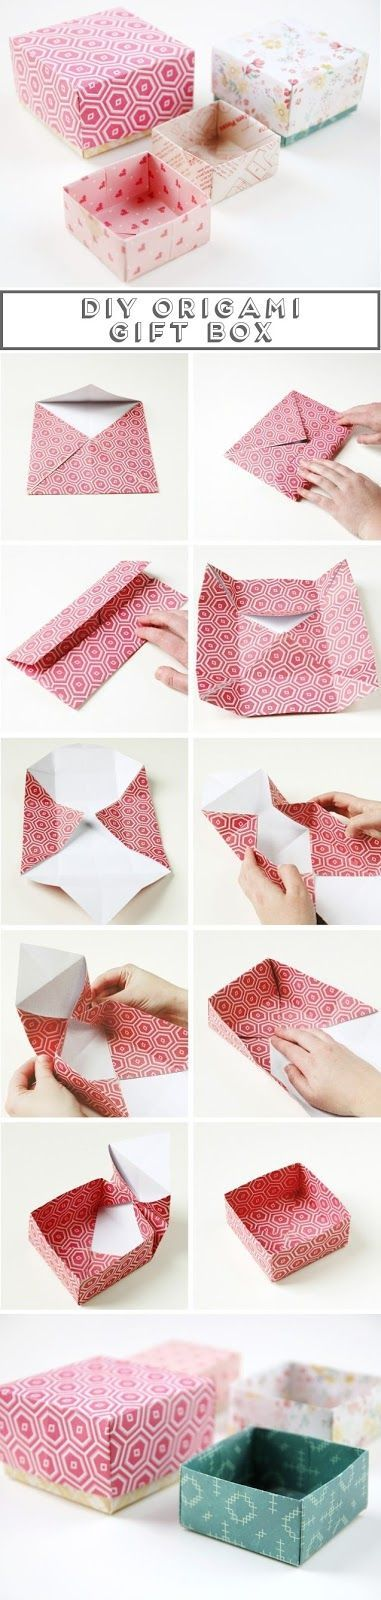 Diy Origami Gift Boxes // Click through for full tutorial